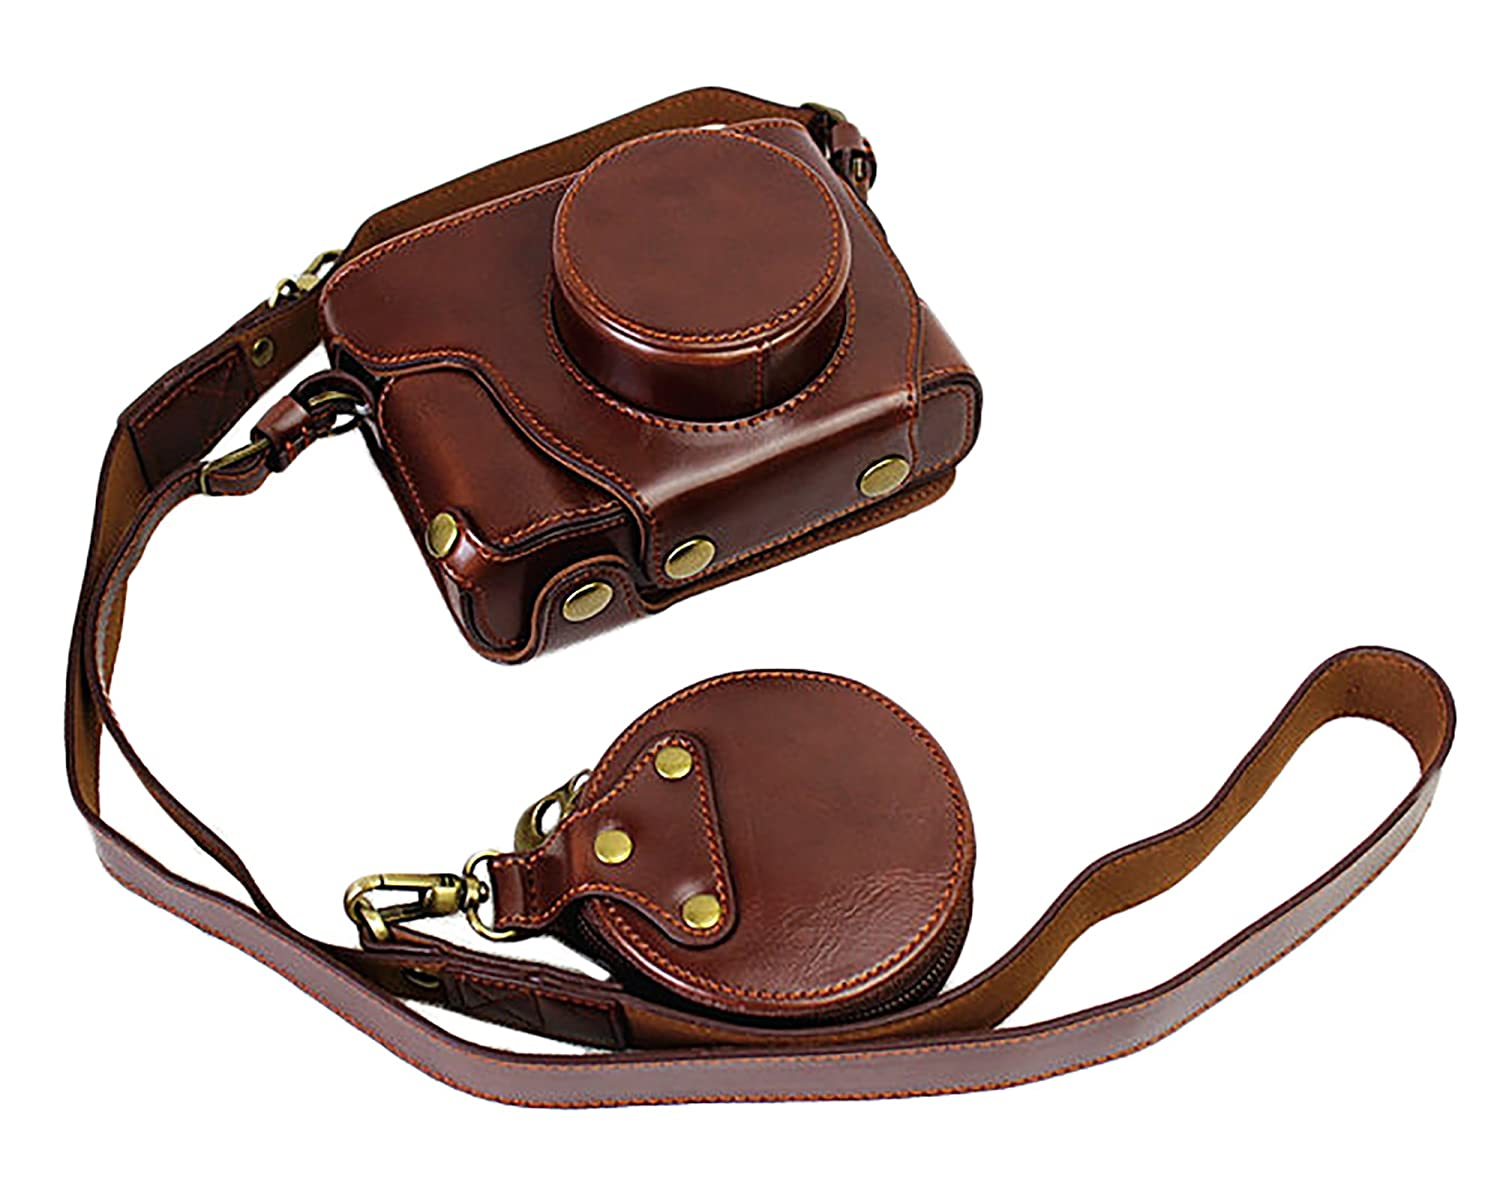 Full Protection Bottom Opening Version Protective PU Leather Camera Case Bag For Fuji Fujifilm x100f with Shoulder Strap Dark Brown